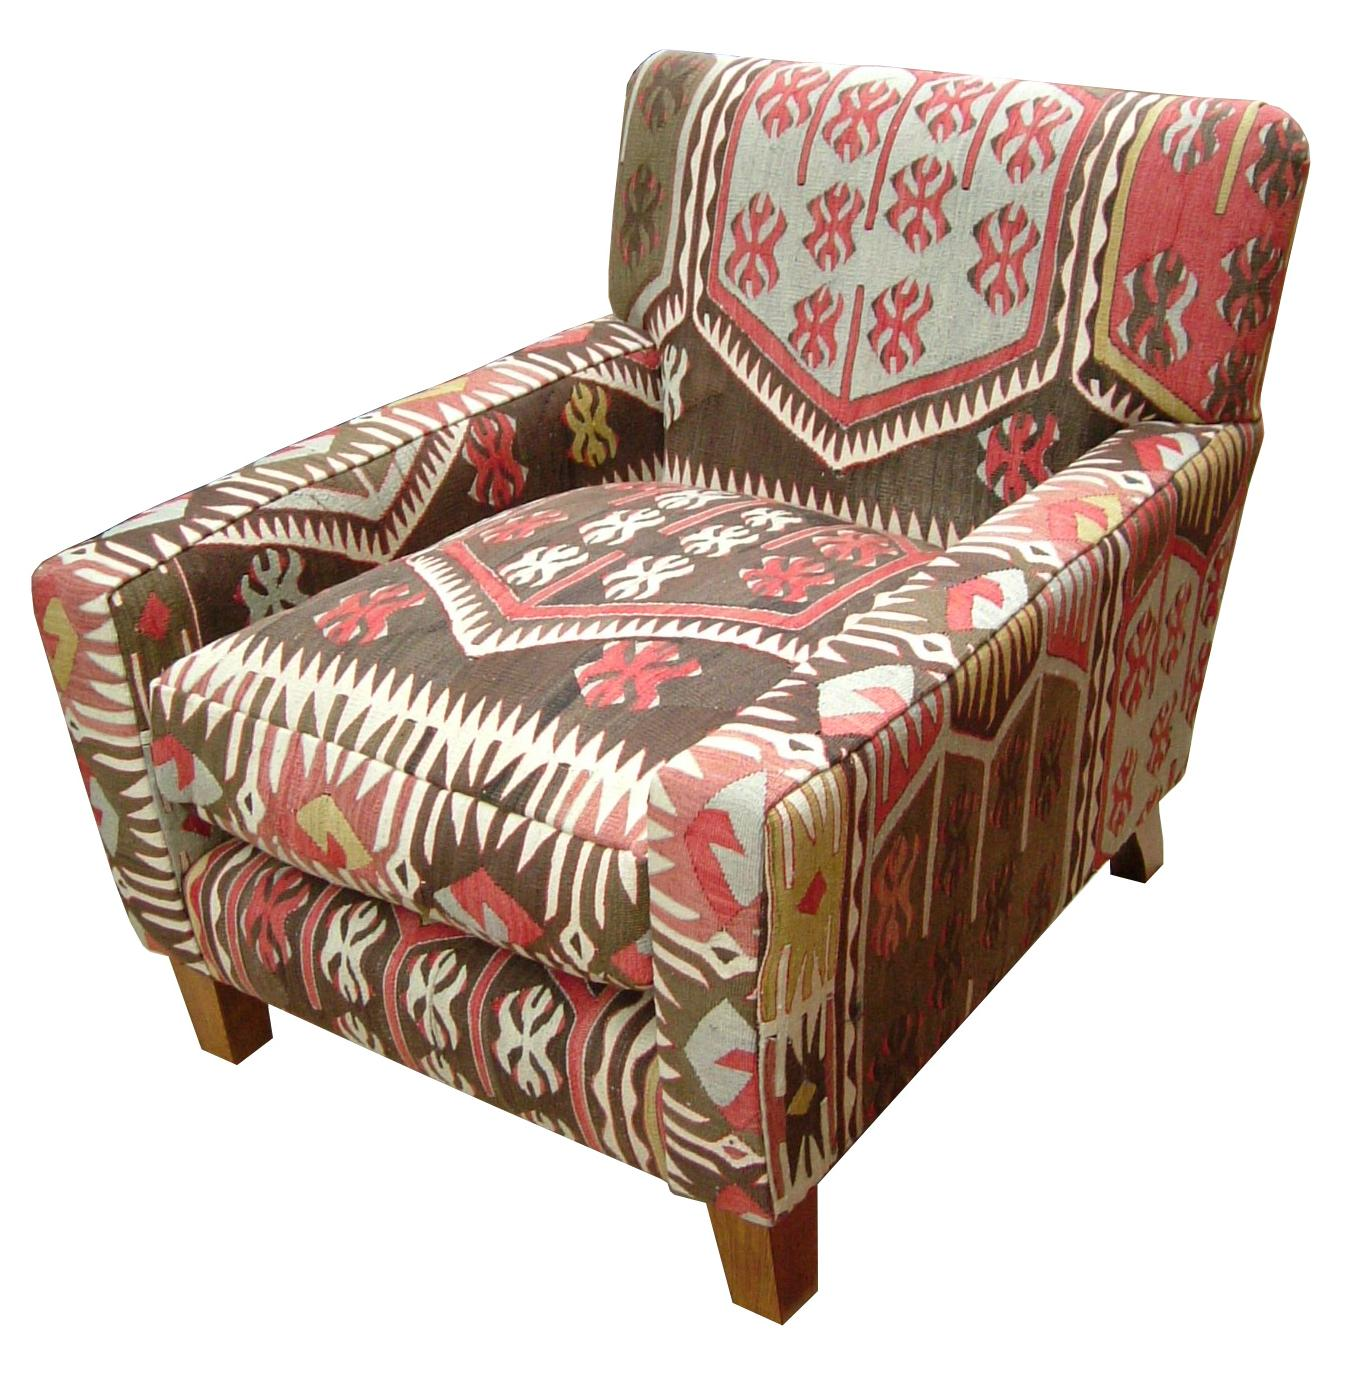 Tremendous Lewes Fixed Back Chair In Turkish Kilim Settle Home Beutiful Home Inspiration Xortanetmahrainfo